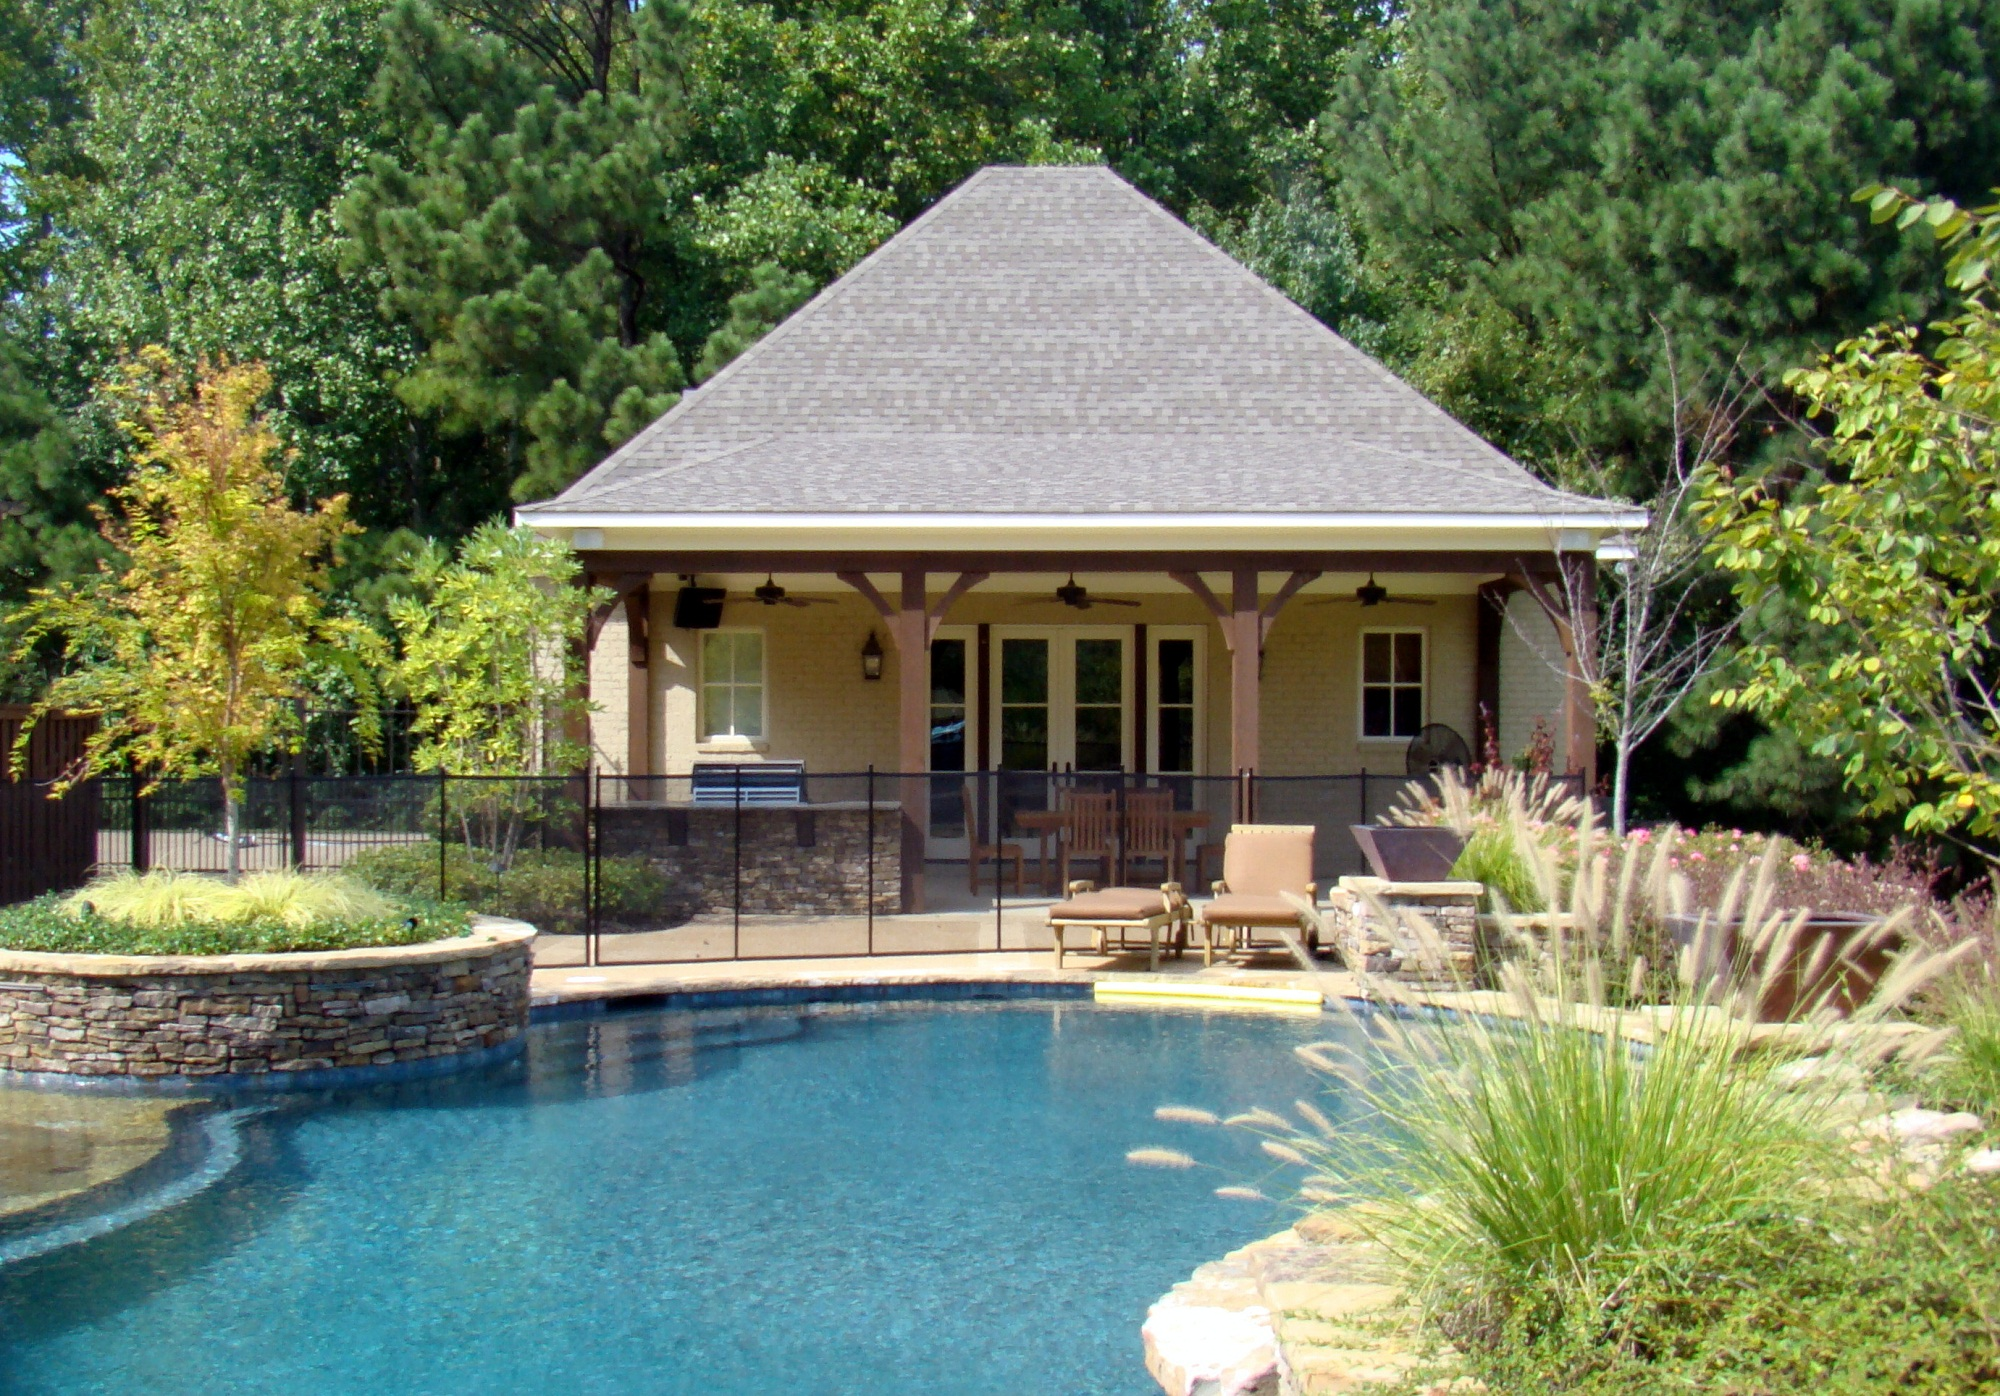 Home additions in shelby county home remodeling for Pool house additions